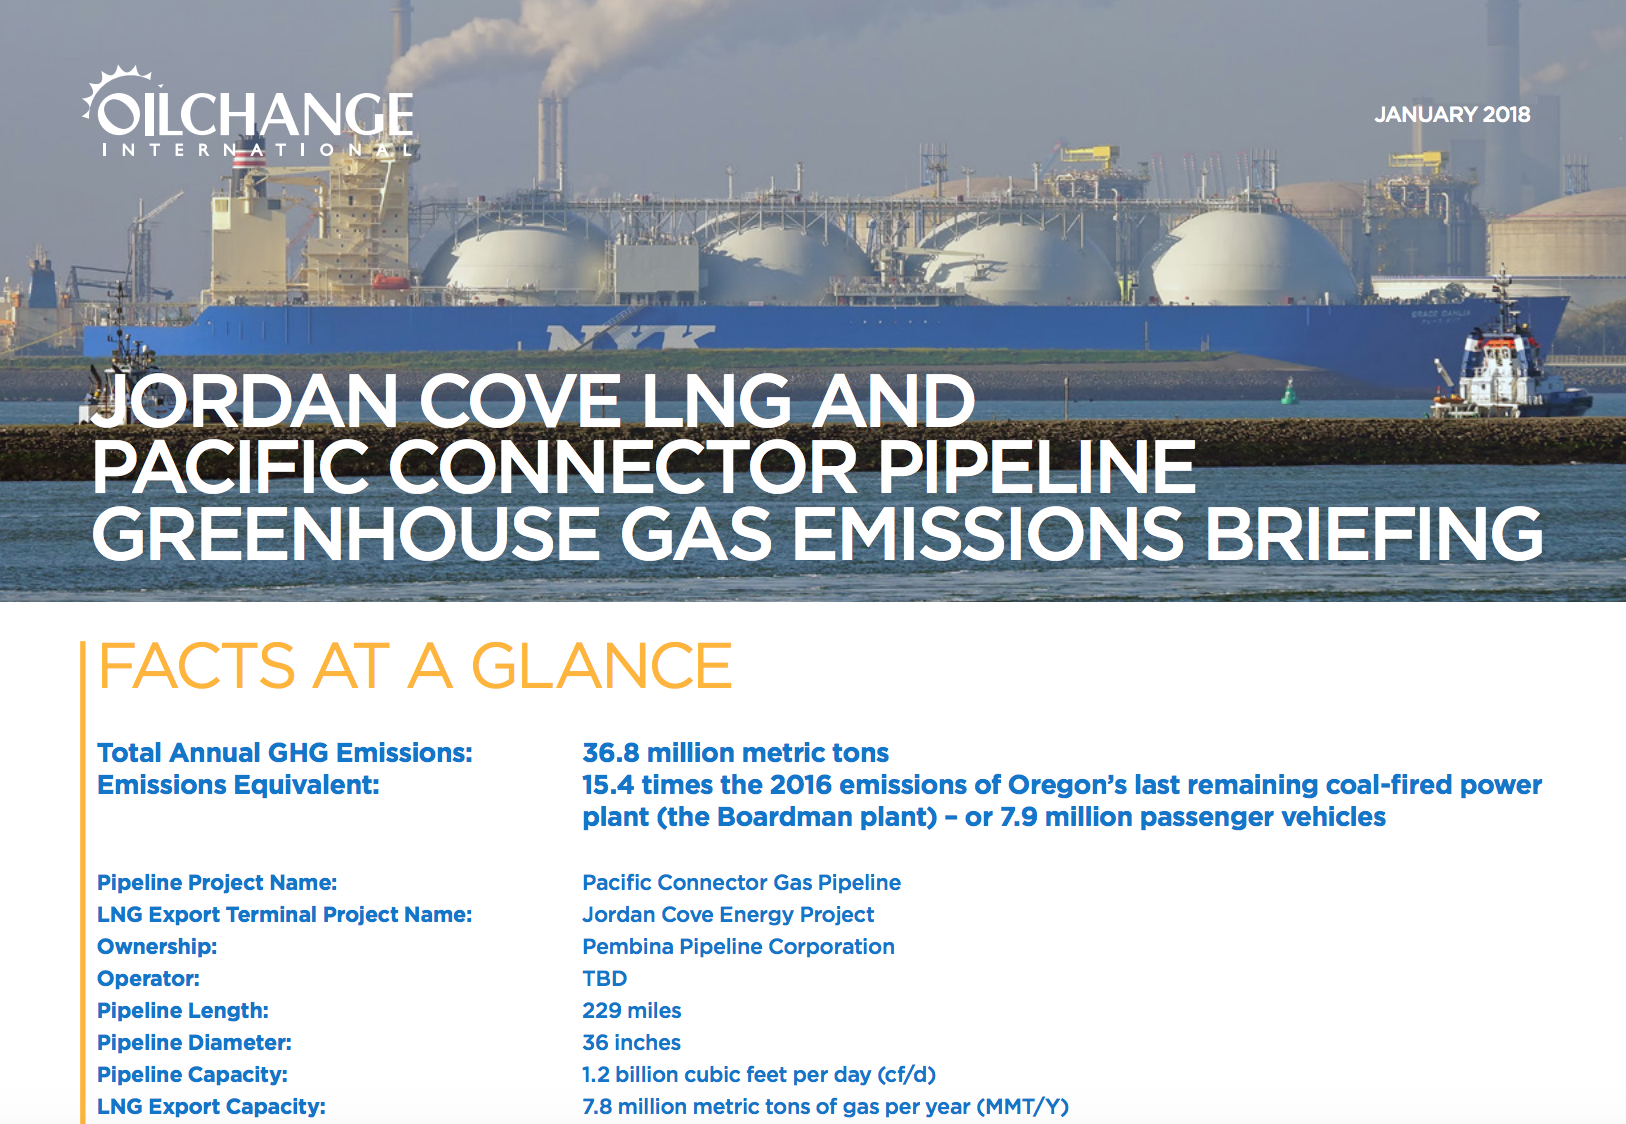 Release: First Comprehensive Climate Analysis of Jordan Cove LNG Project